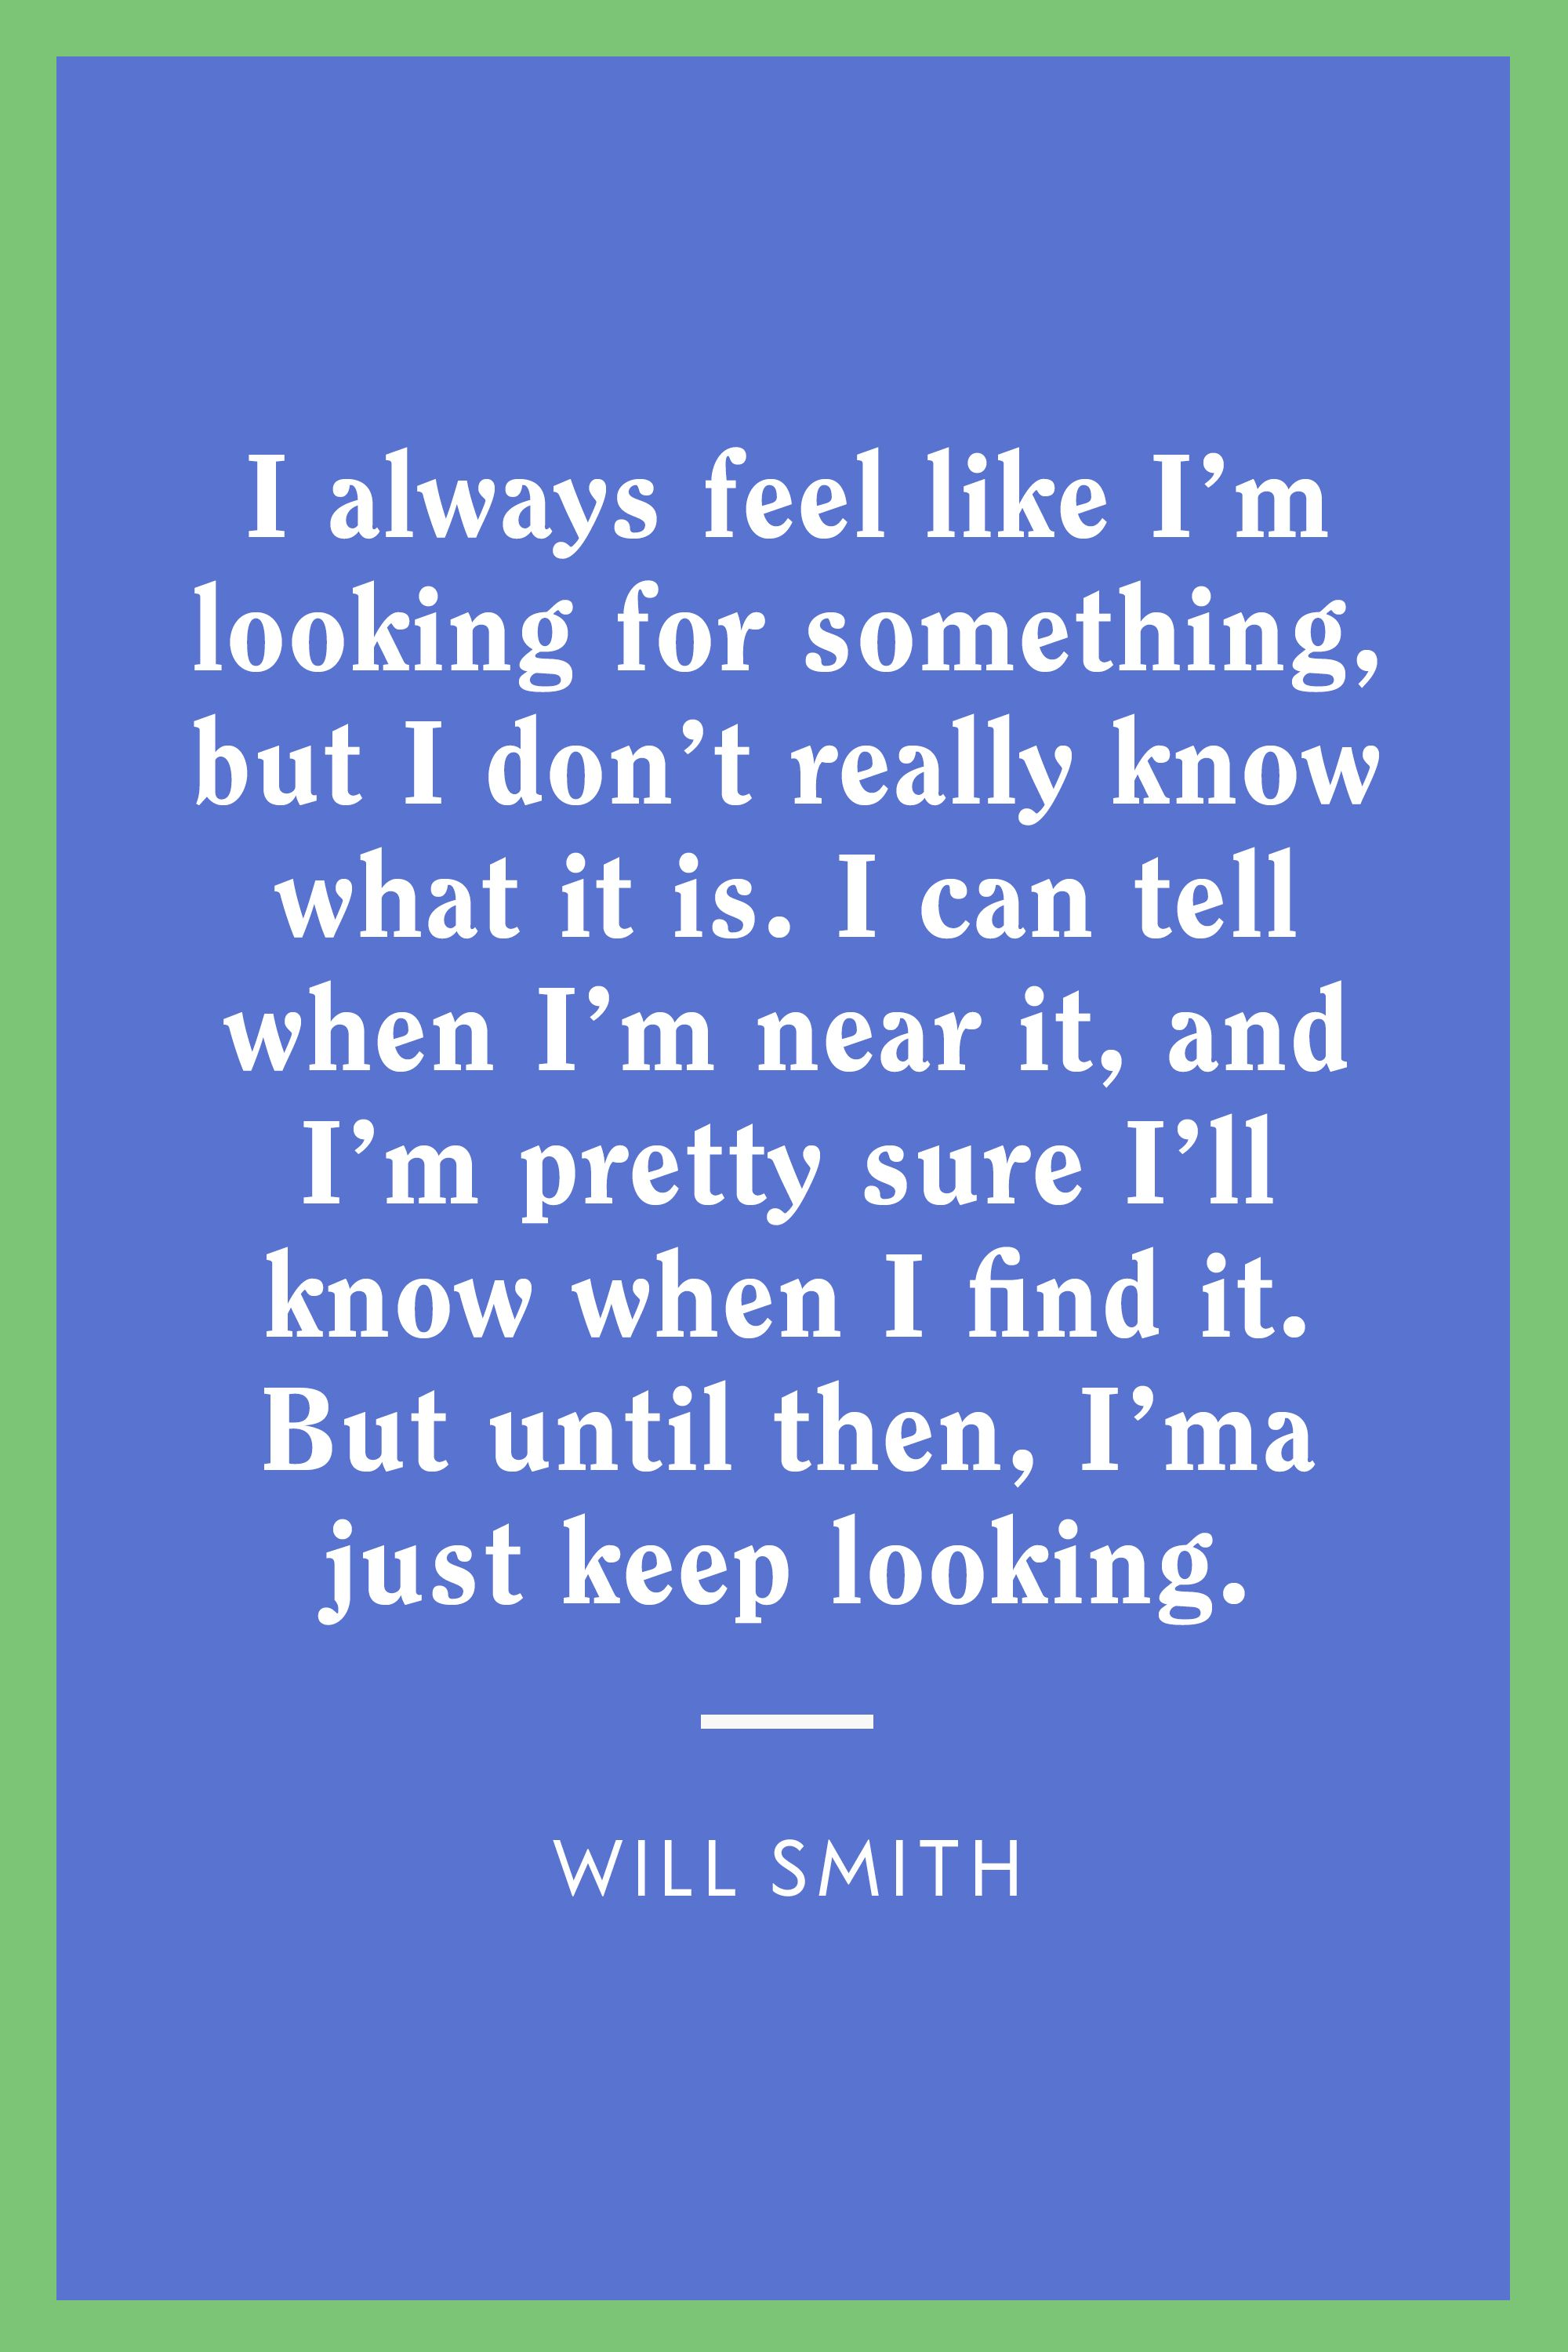 8 Inspiring Will Smith Quotes On Life Success And Perseverance